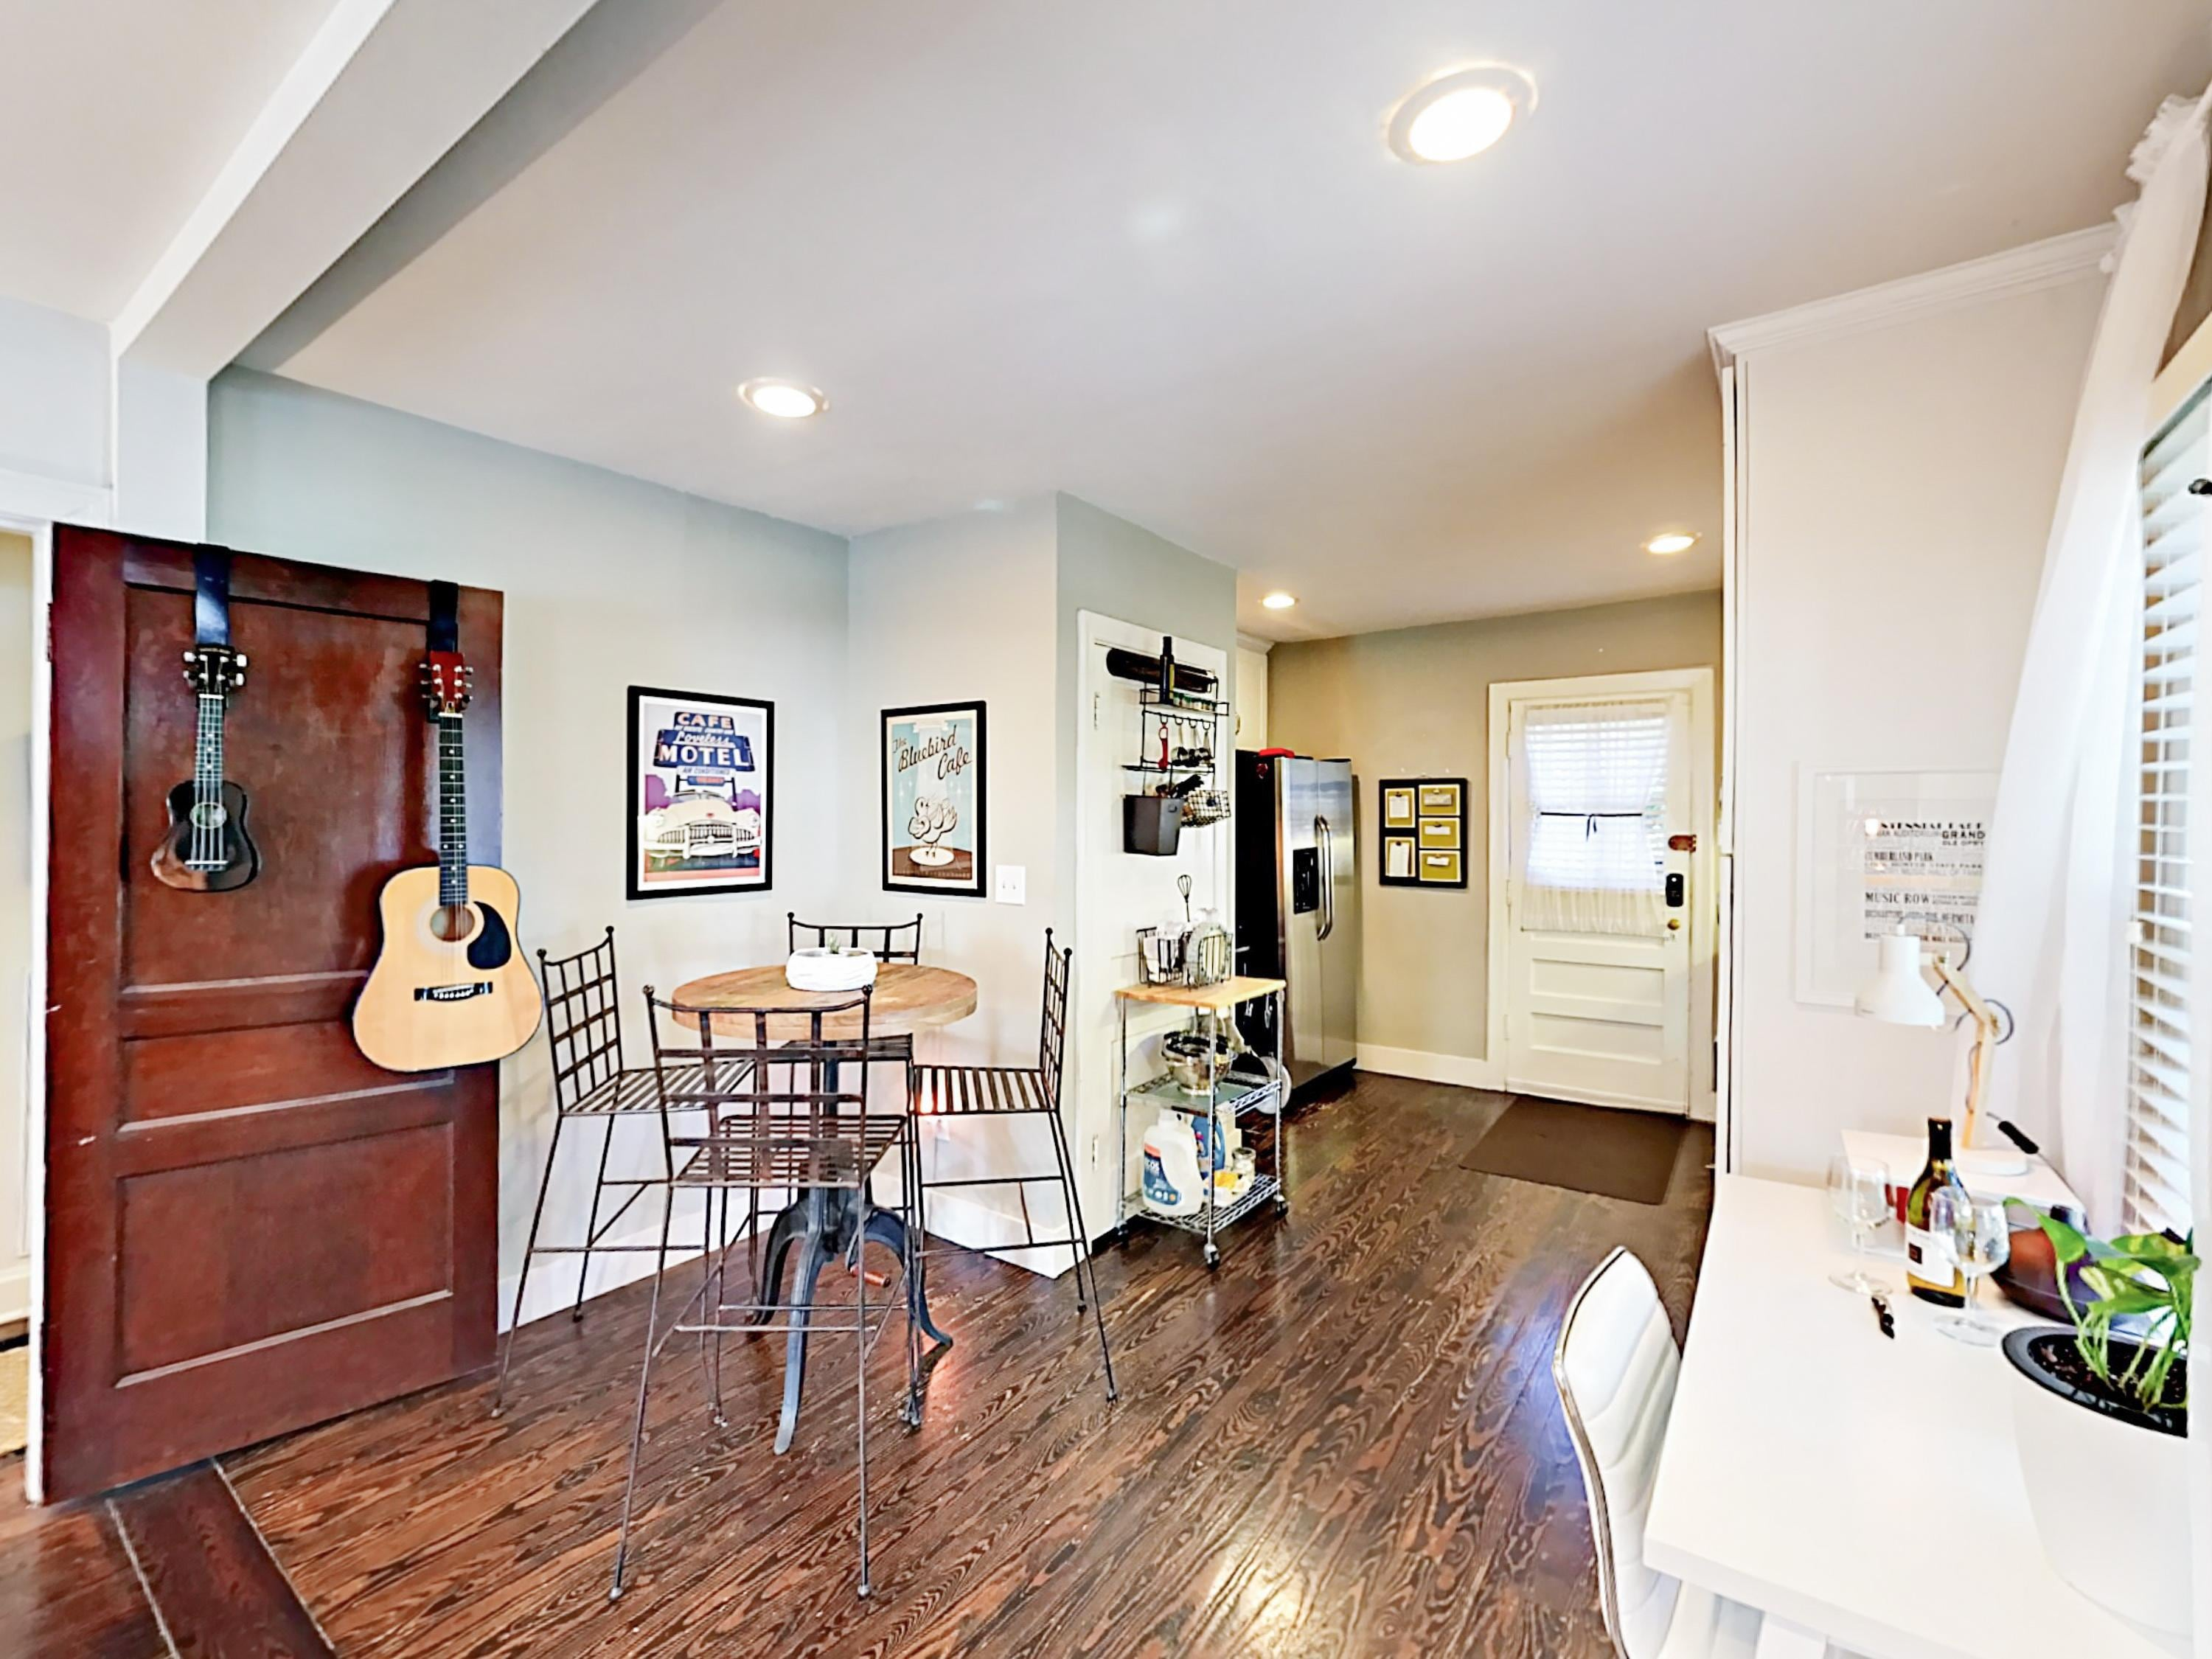 Original refinished hardwood floors and contemporary decor infuse the bungalow with both modern and vintage character.